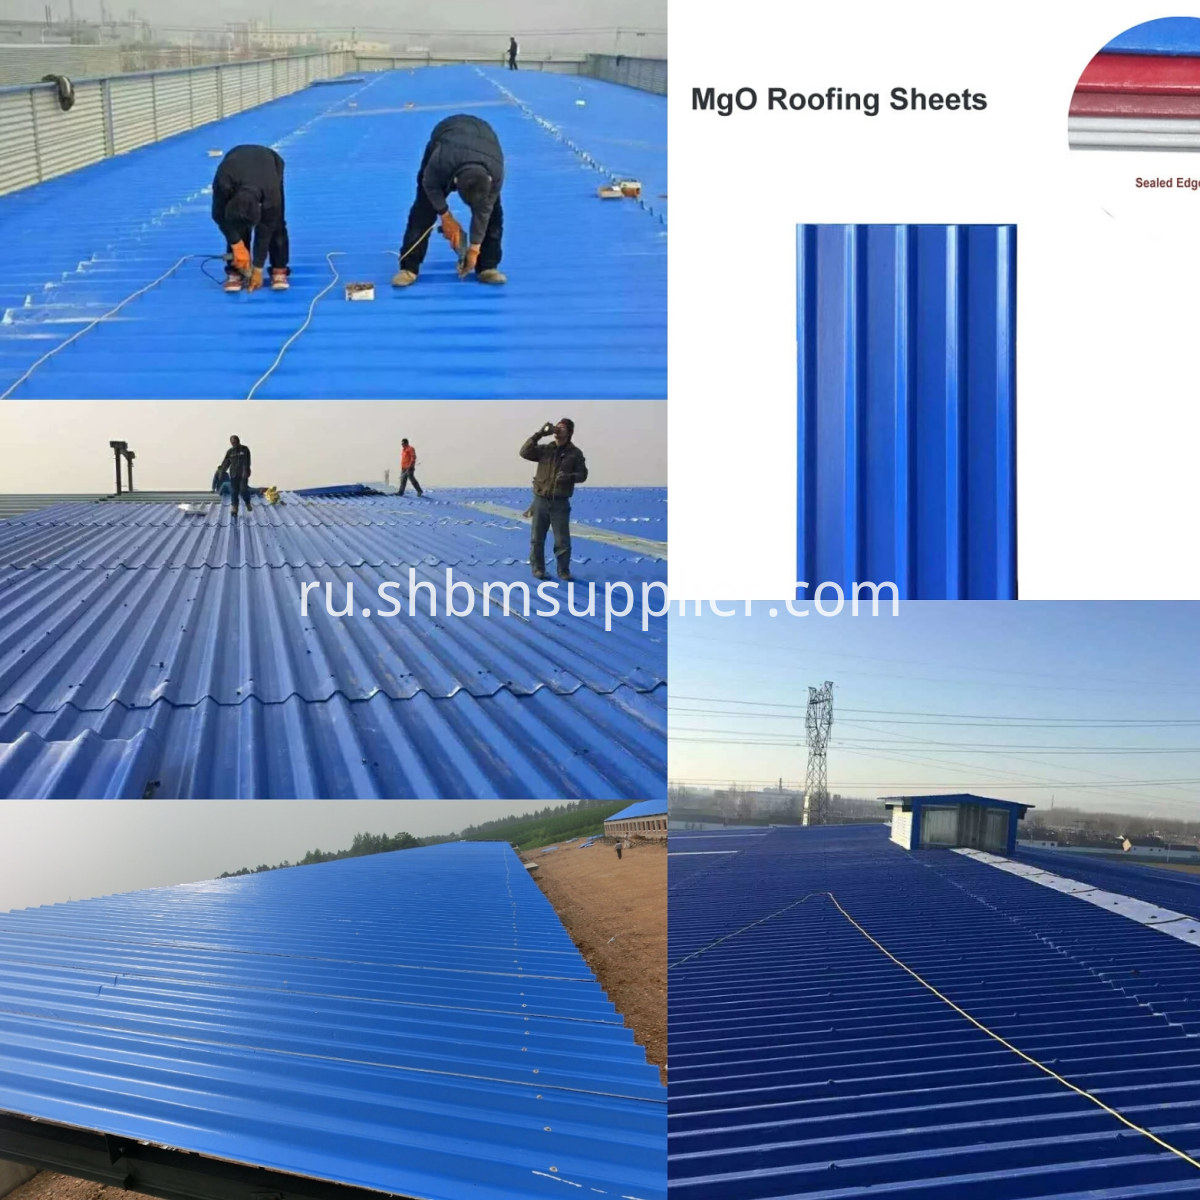 Iron Crown Anti-fire Non-asbestos MgO Roofing Sheets